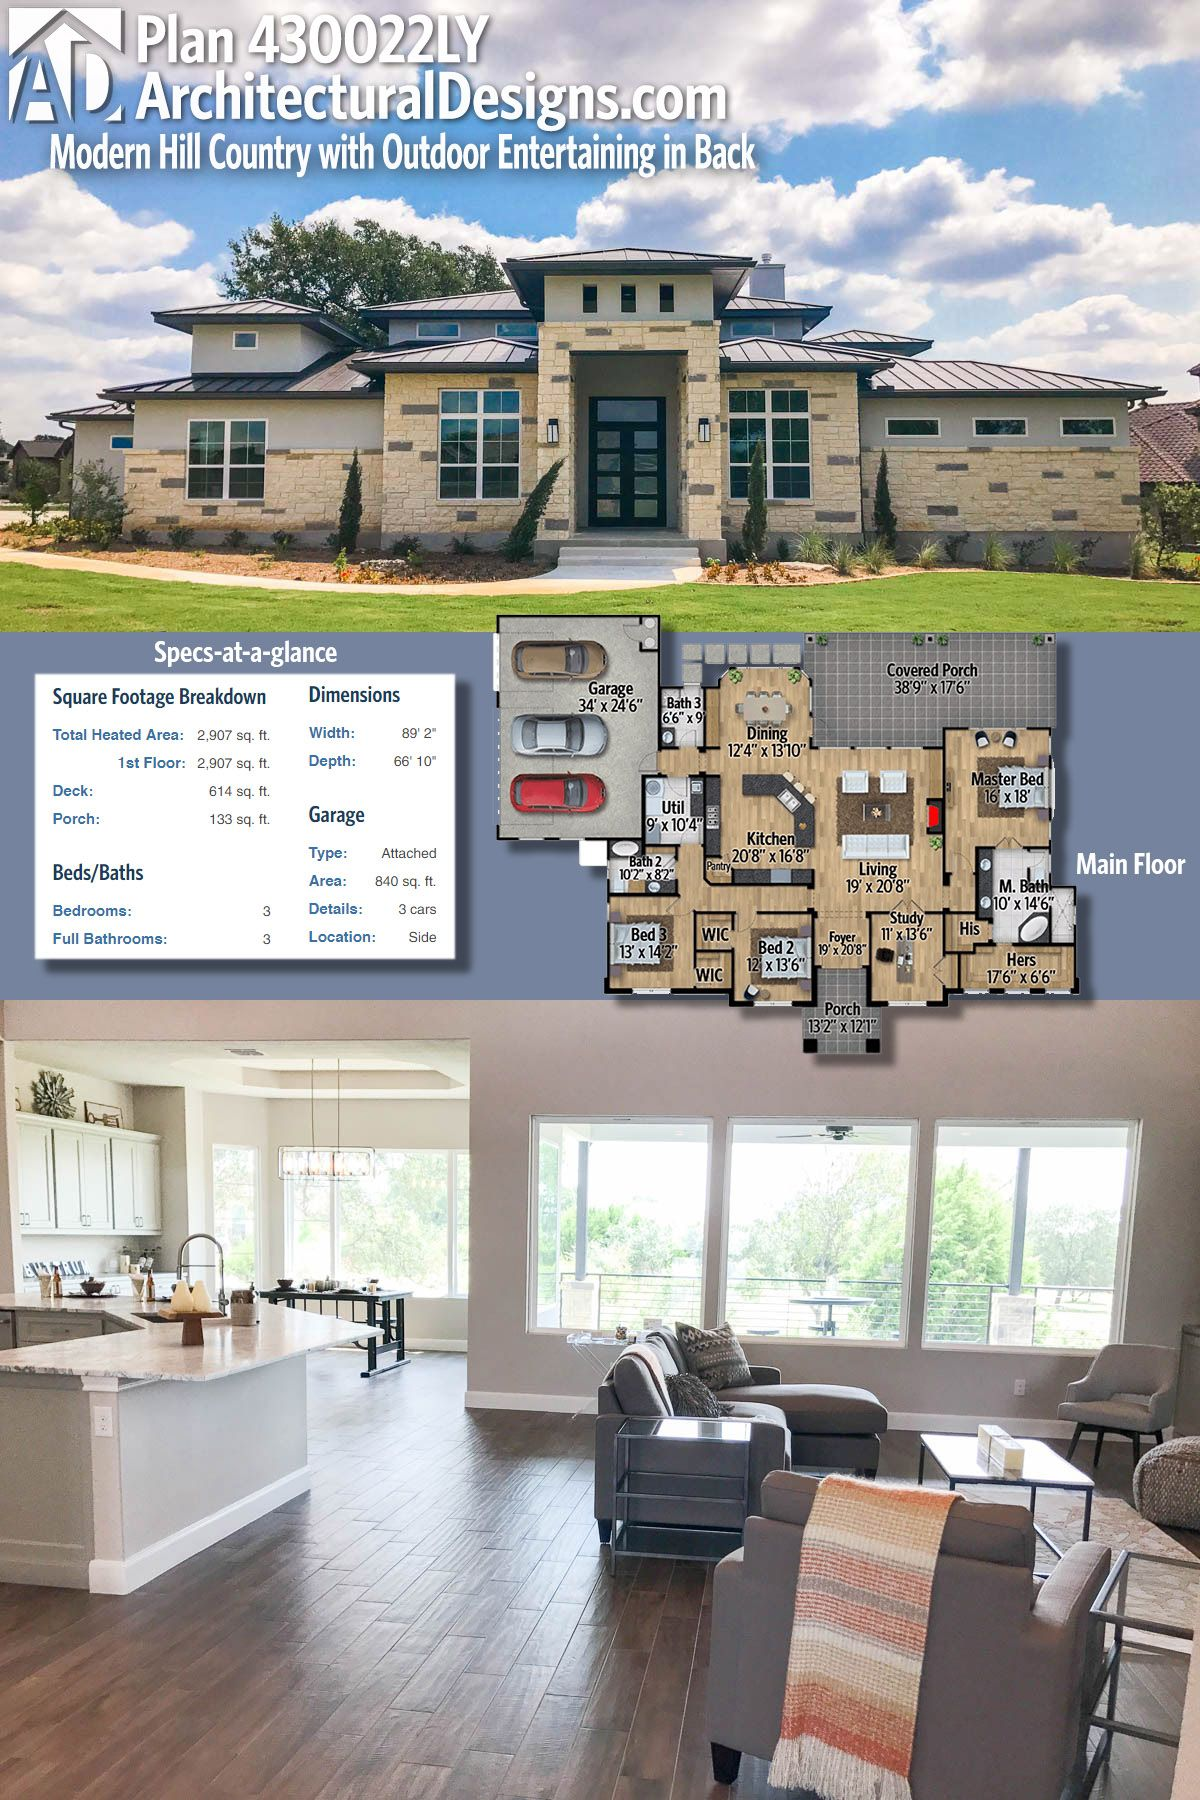 icf home designs%0A Architectural Designs   Bed Modern Hill Country House Plan has a large  outdoor living area in